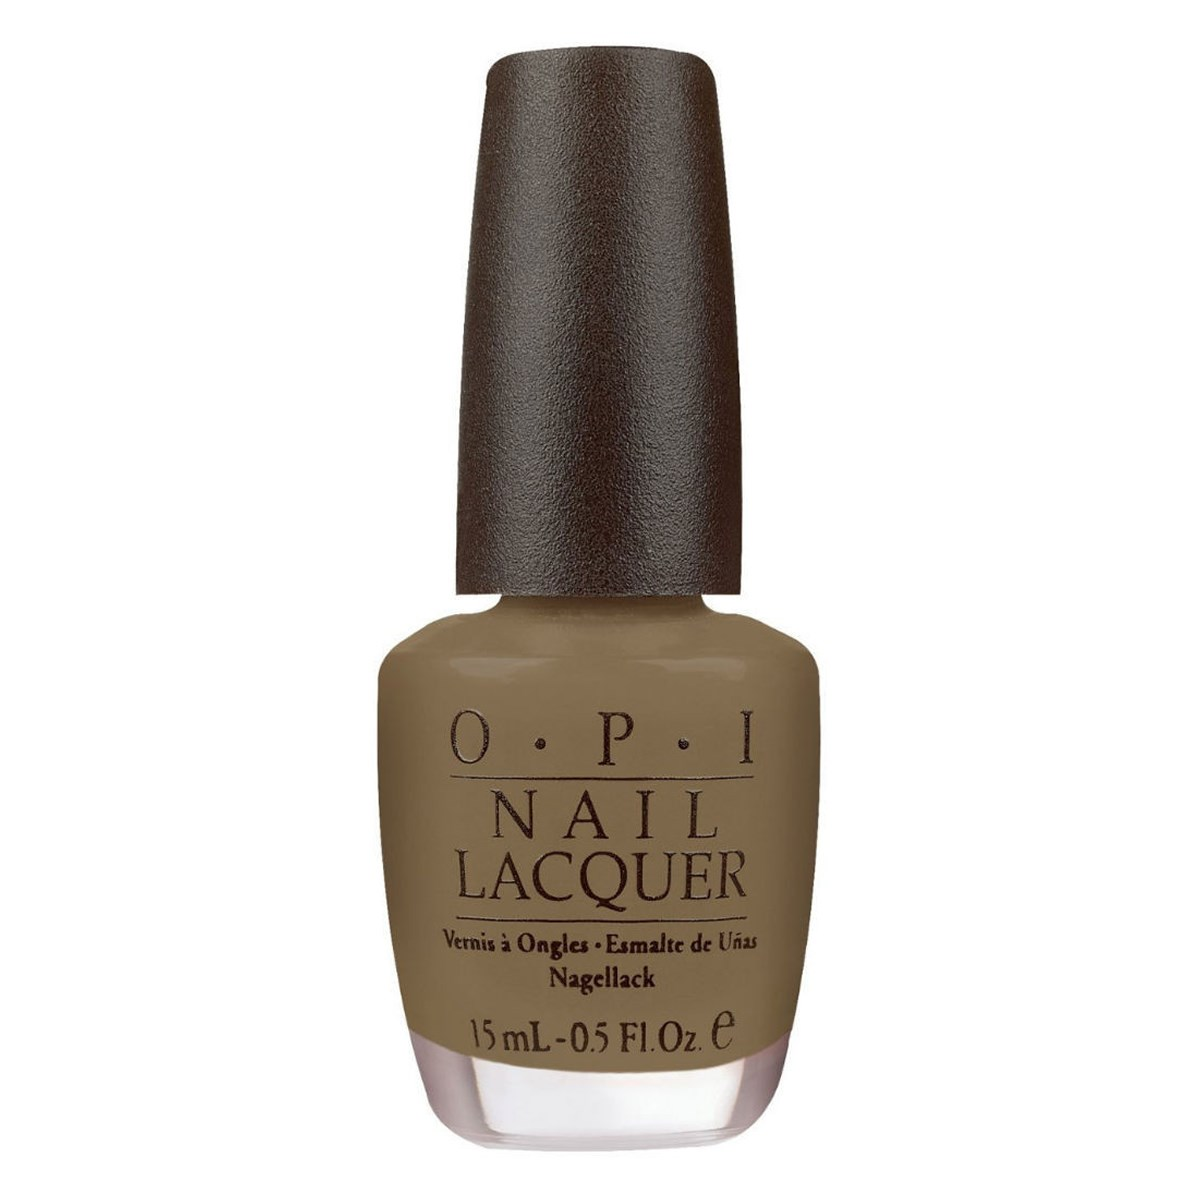 OPI Classic Nail Lacquer You Don't Know Jacques!